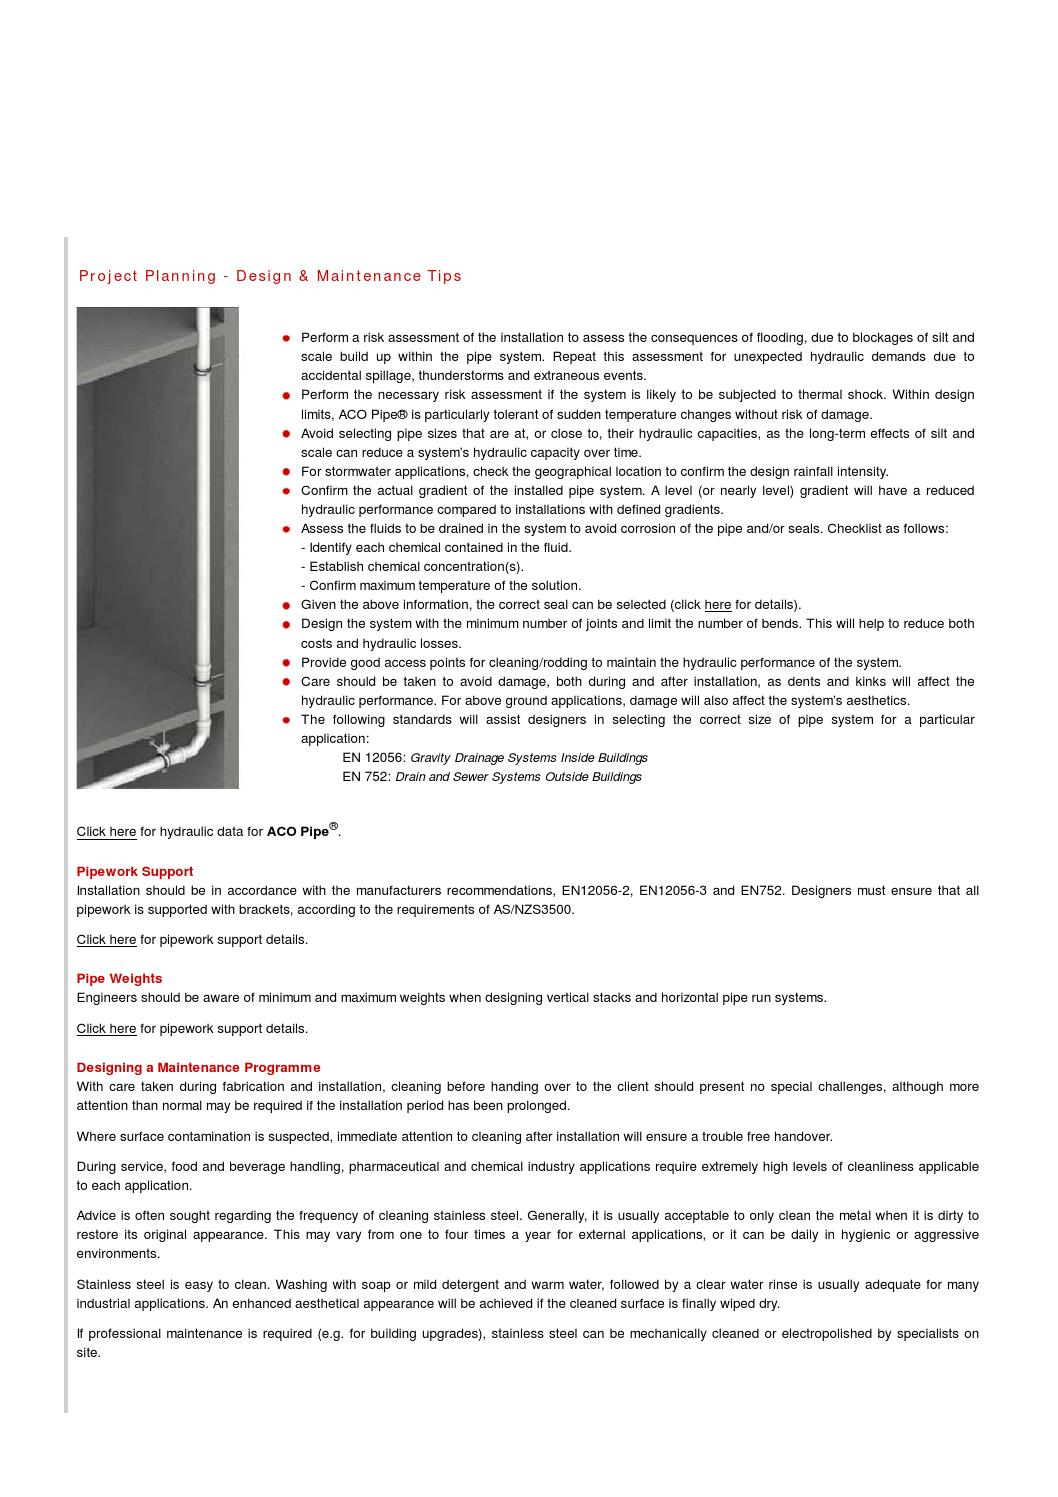 Aco pipe design maintenance by ACO Building Drainage - issuu